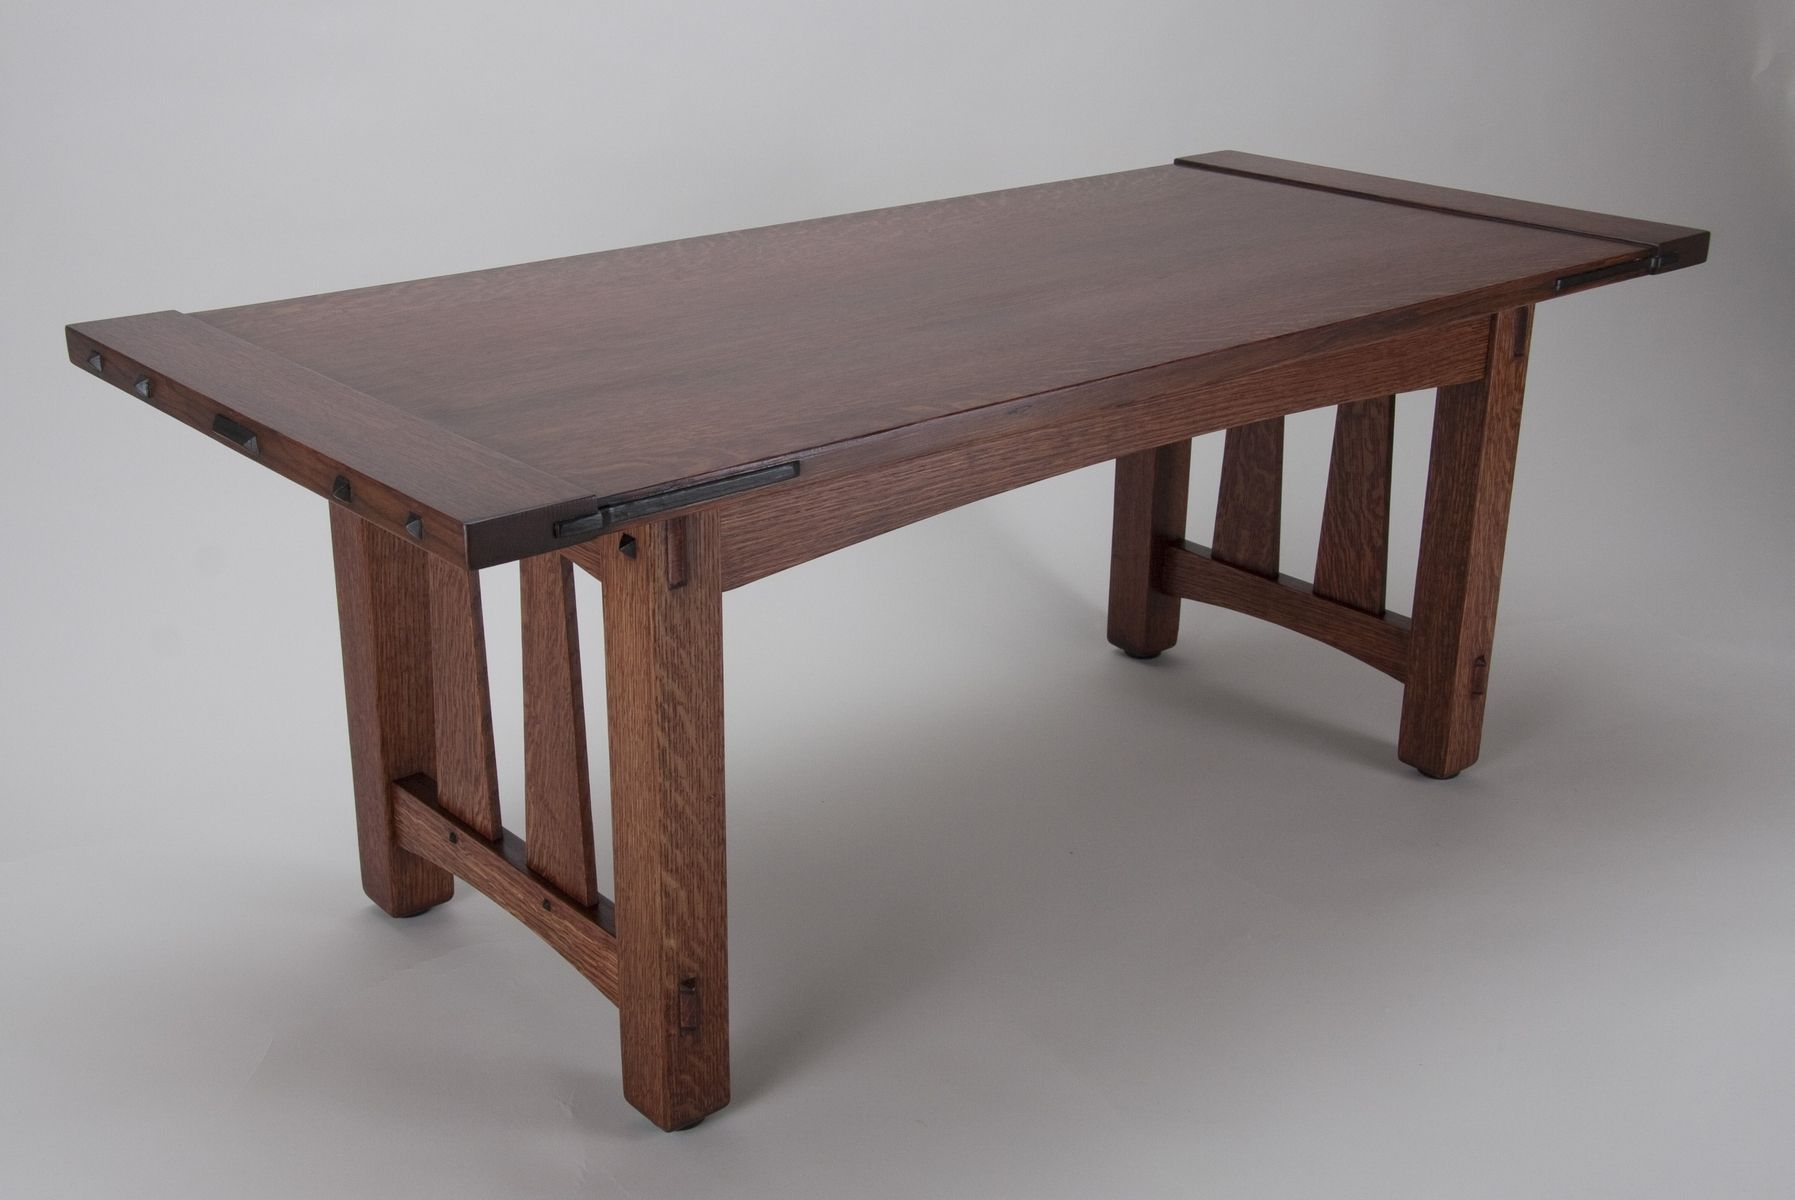 Mission Coffee Tables | Craftsman, Arts and Crafts, Stickley Style ...